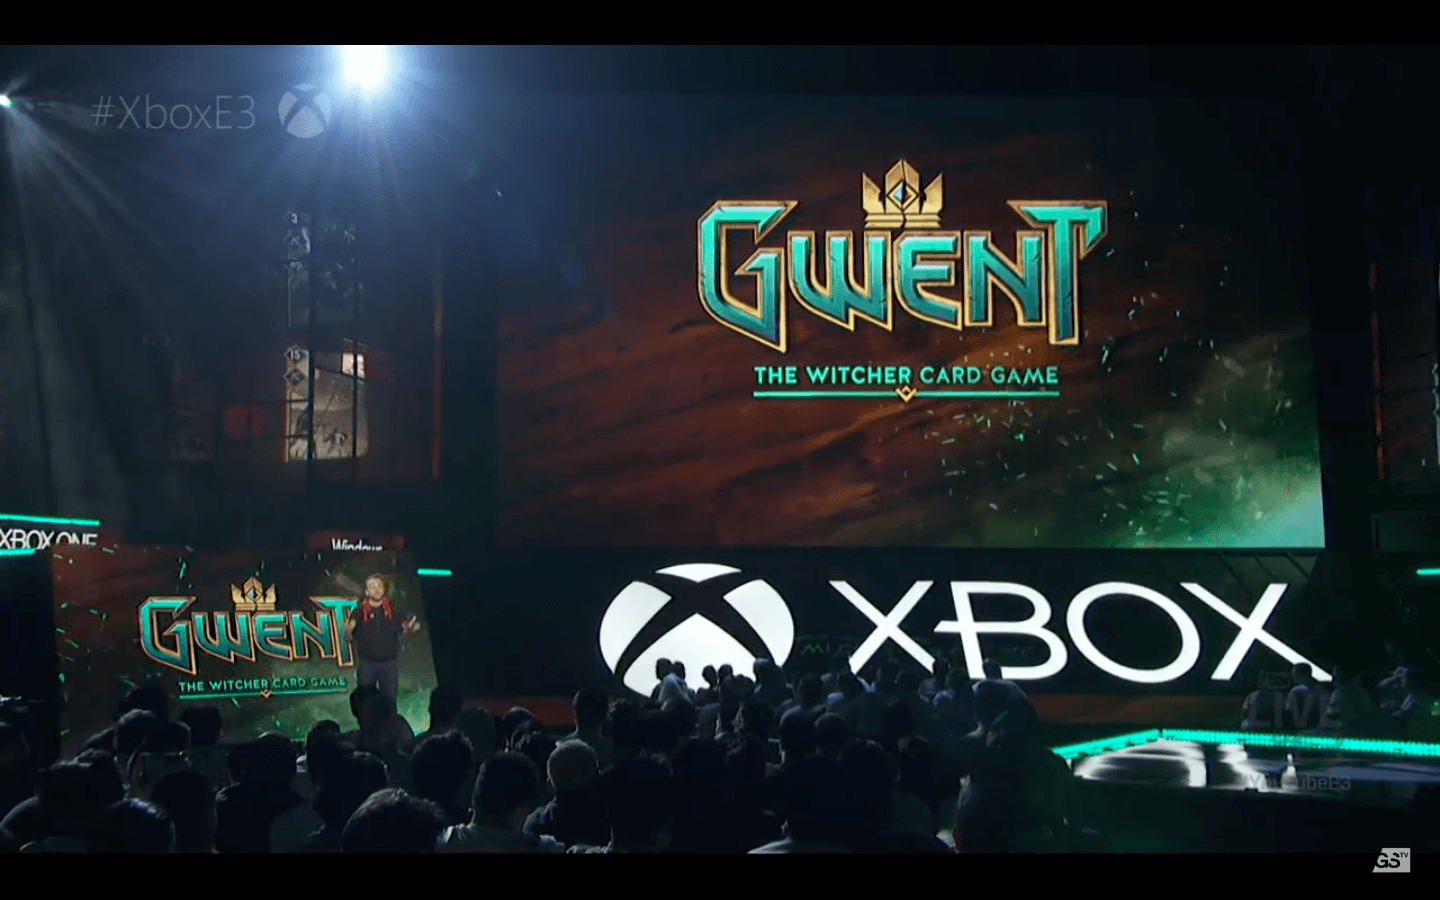 E3 2016: Gwent - The Witcher Card Game Announced